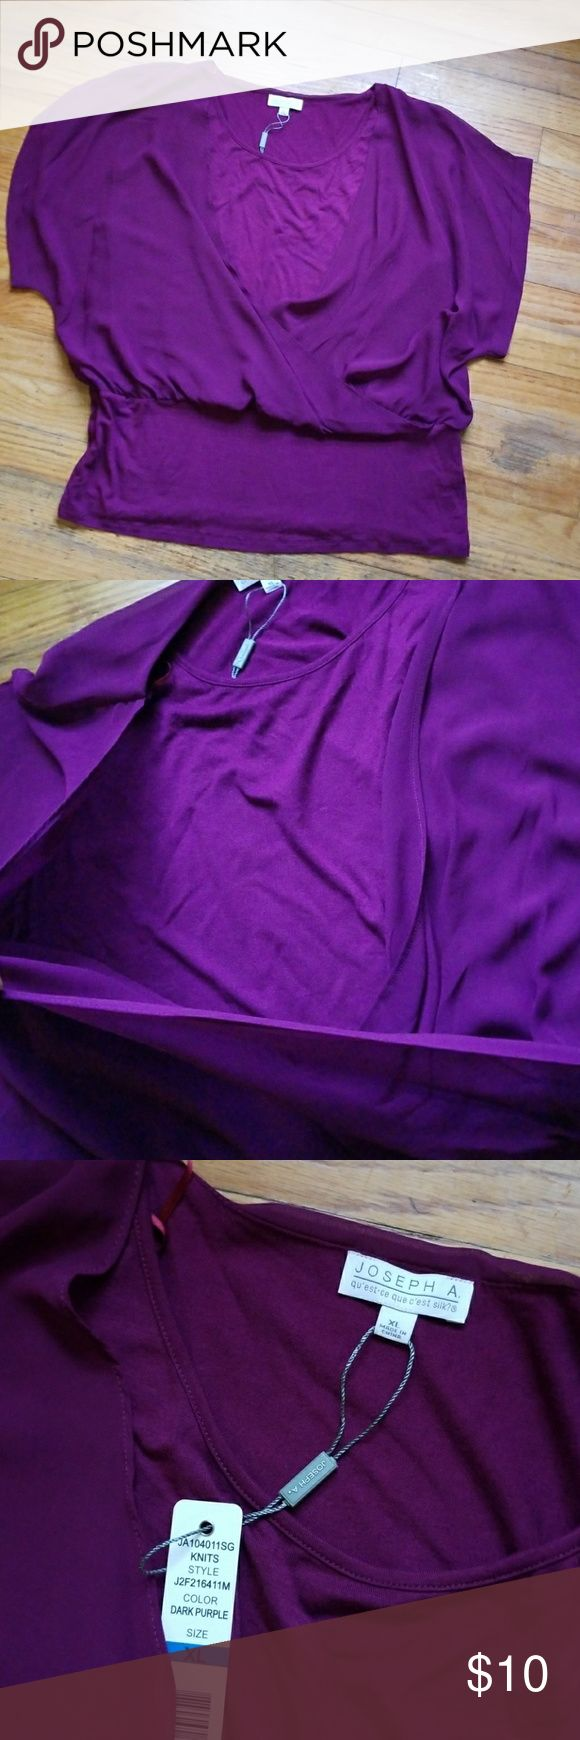 3 FOR $15: Deep Purple Women's Blouse 3 FOR $15: Beautiful deep purple blouse. Faux wrap design with banded waist & dolman style sheer sleeves.  🚫PRICE FIRM IF PURCHASED ALONE🚫 Joseph Tops Blouses